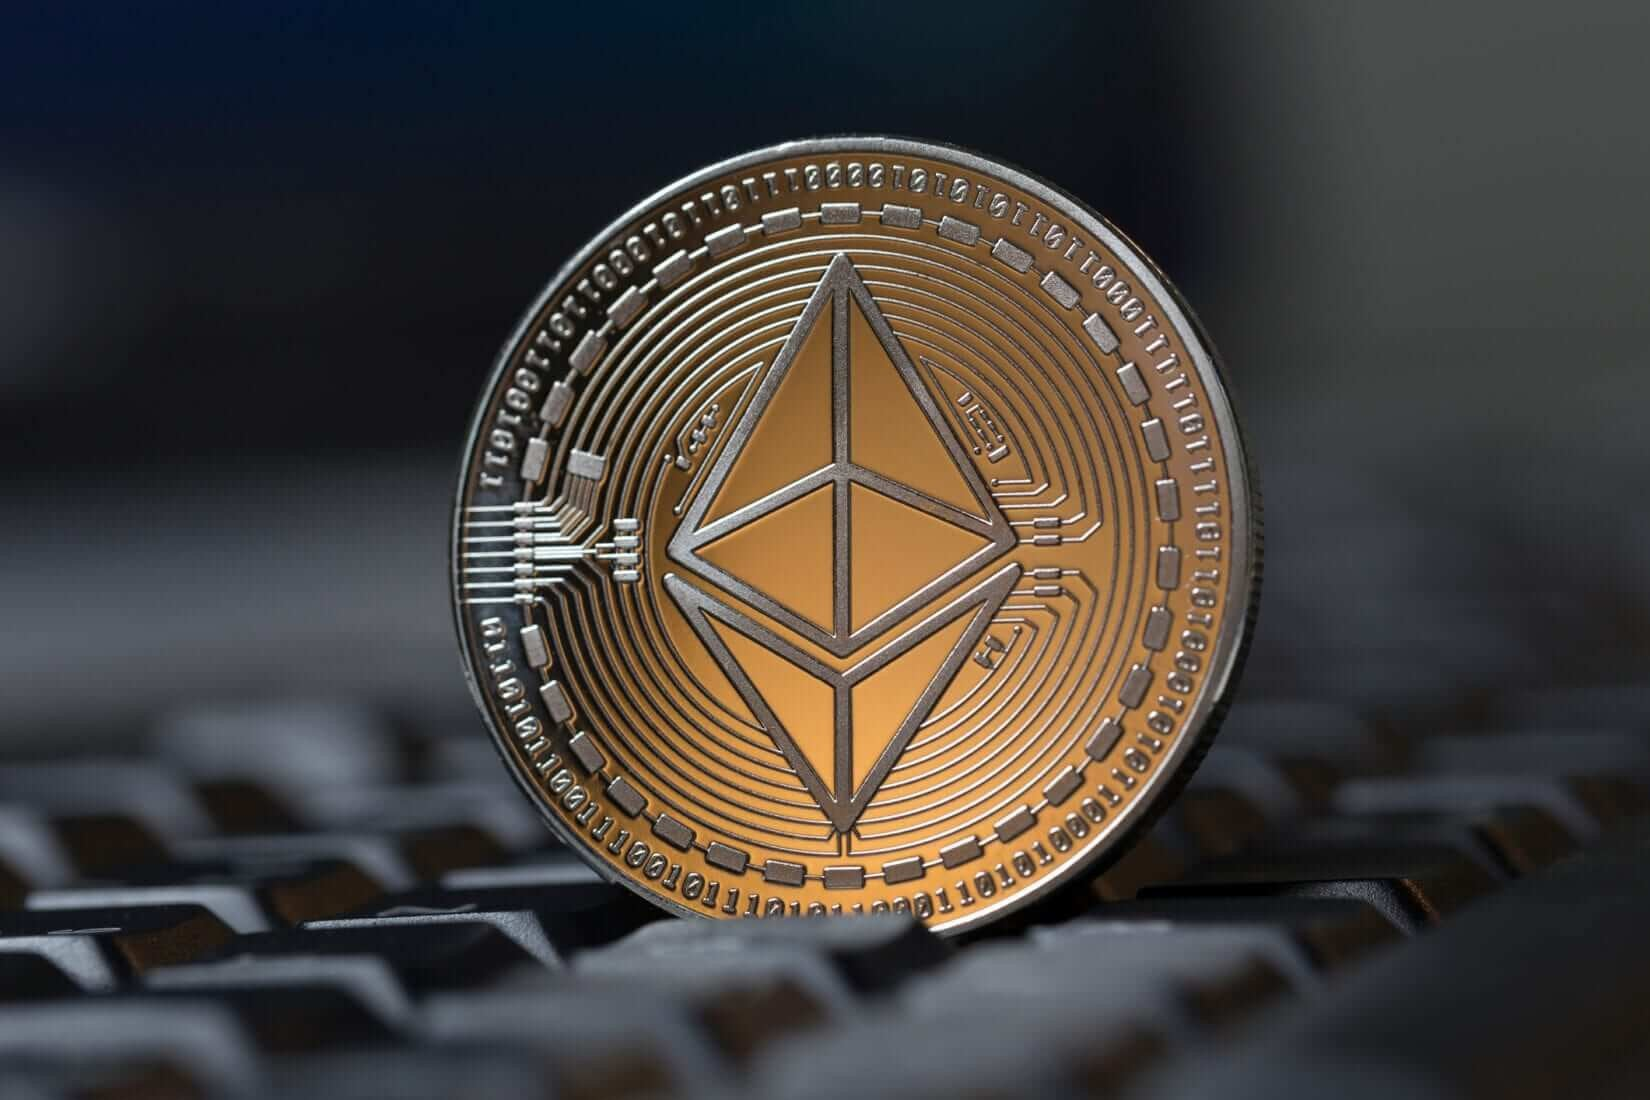 Goldman Sachs: Ethereum's popularity could see ETH become dominant store of value